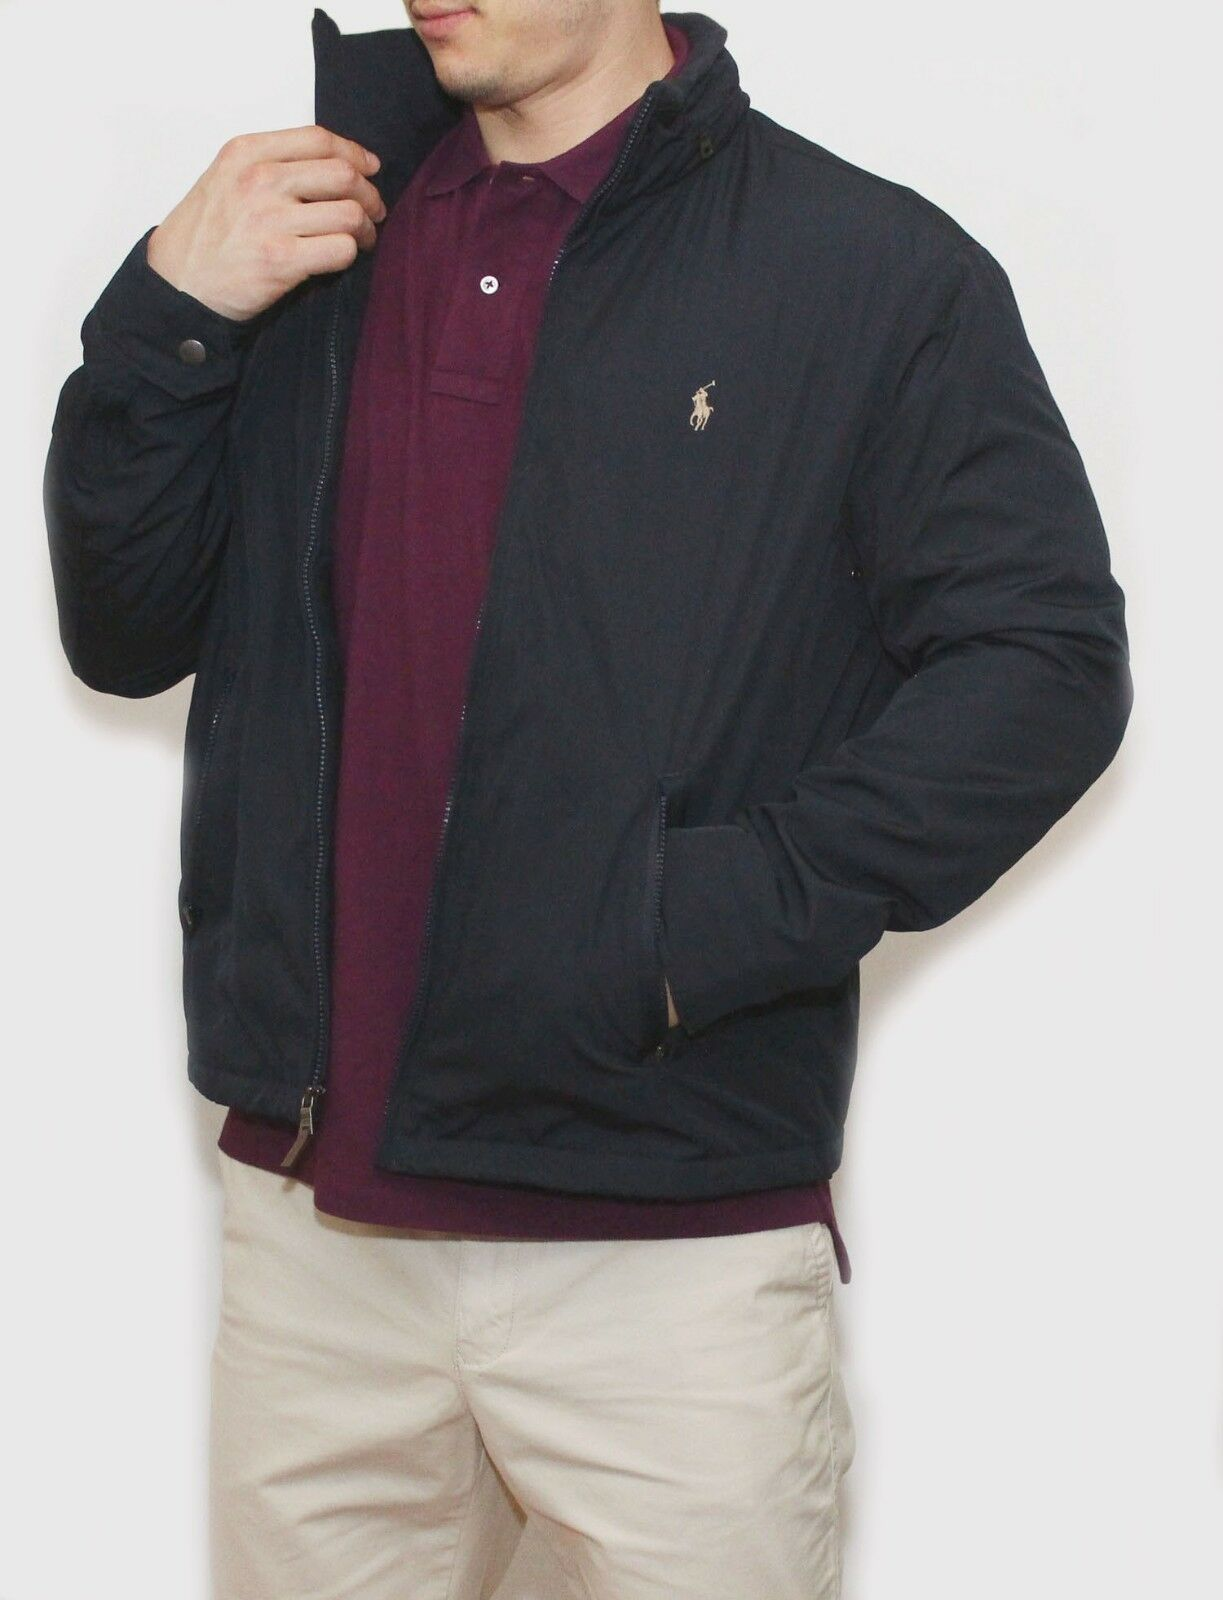 d498436656 Details about NEW Polo Ralph Lauren Mens Pony Perry Lined Jacket Fleece  Coat S M L XL XXL NWT